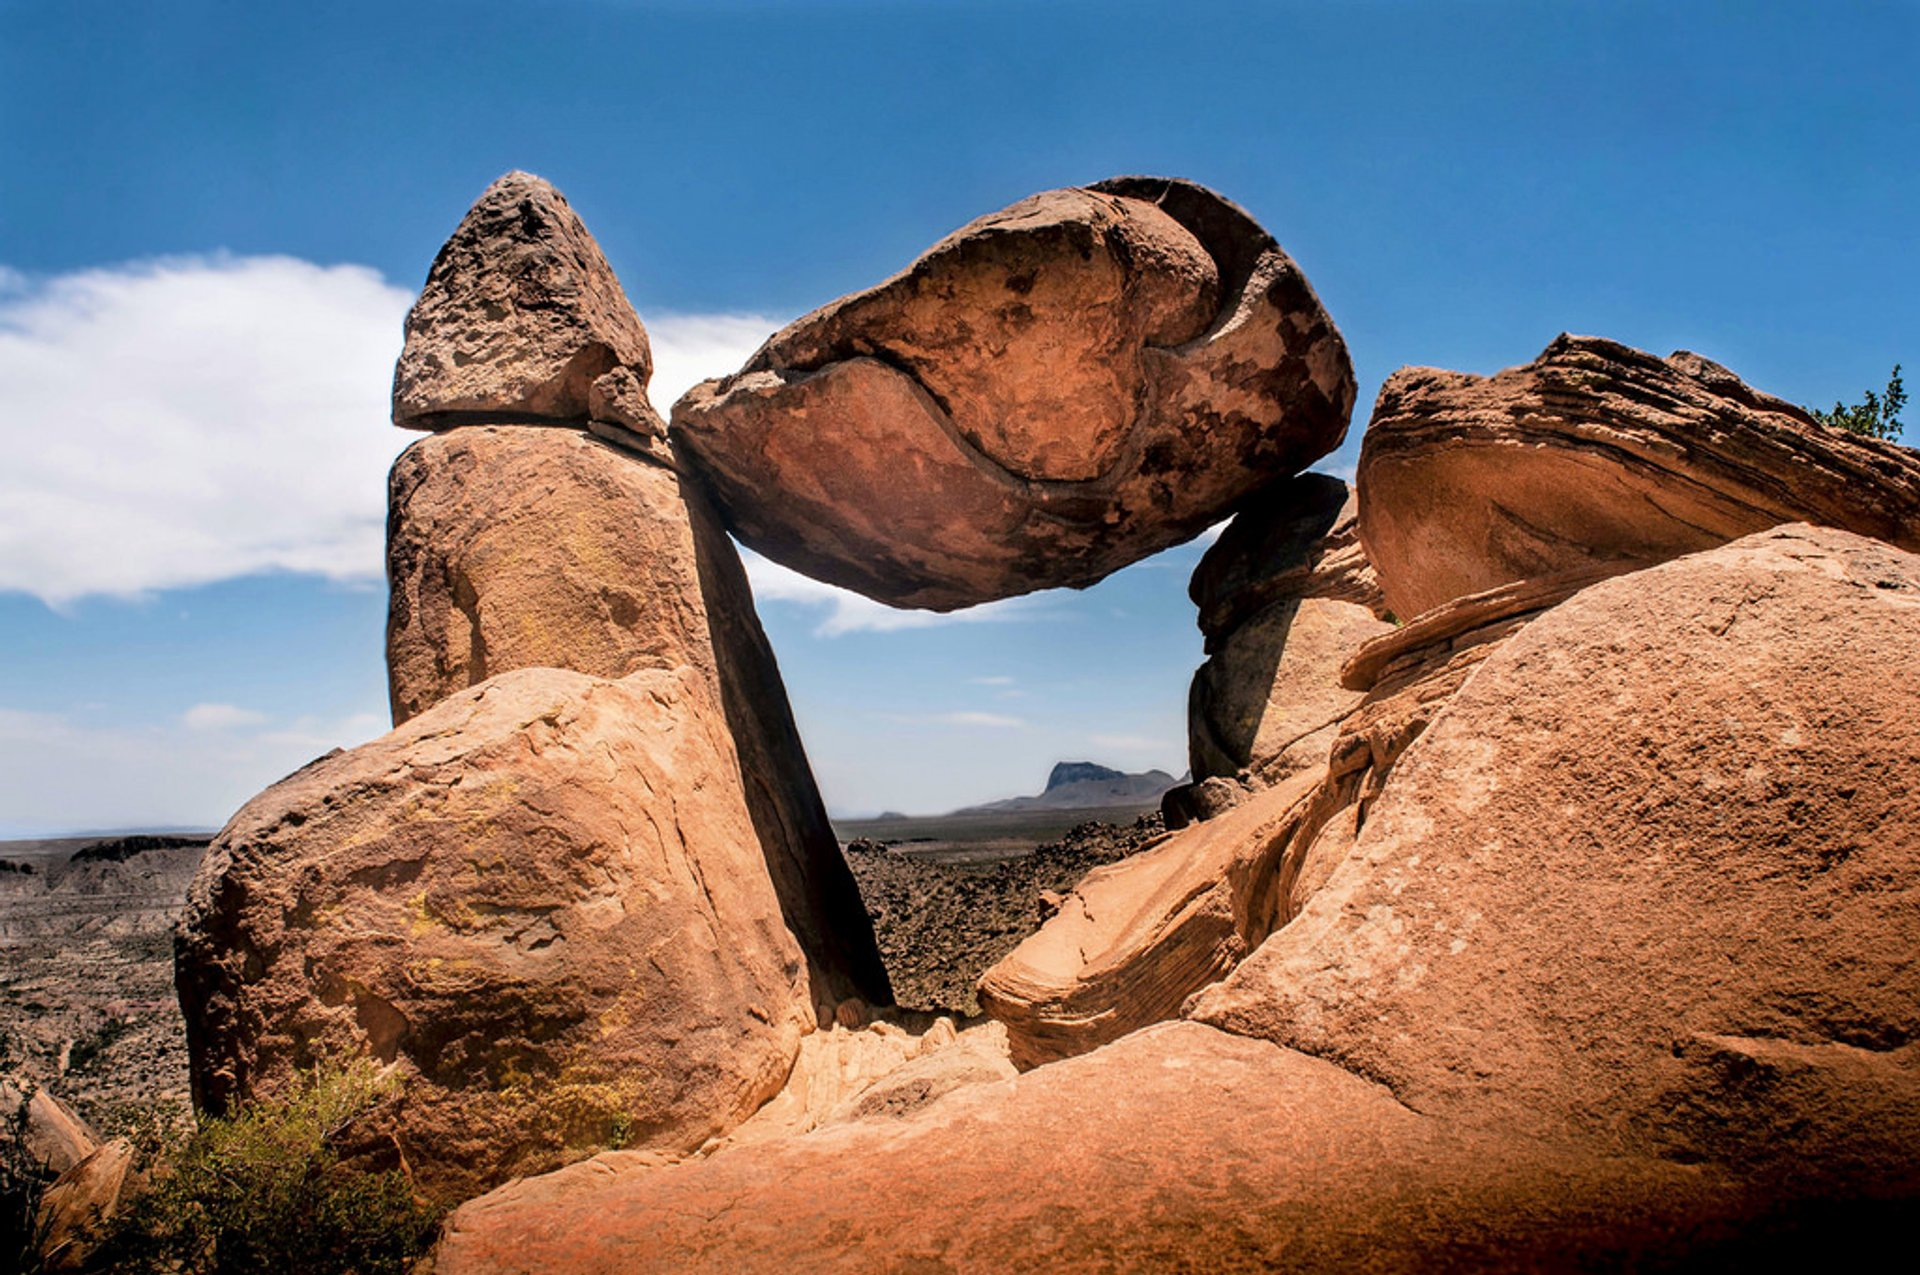 Balanced Rock. Big Bend National Park 2020